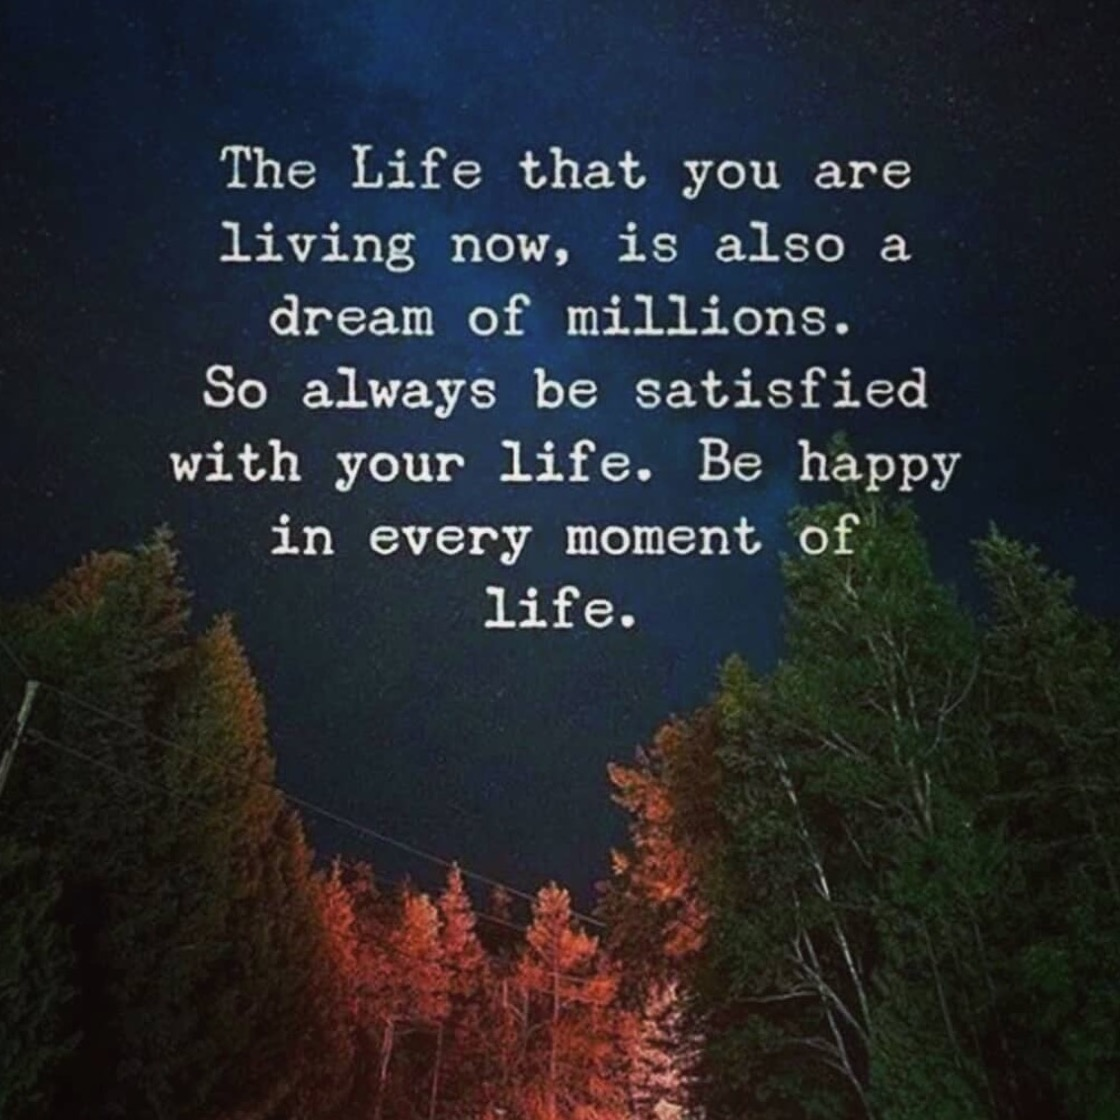 The Life That You Are Living